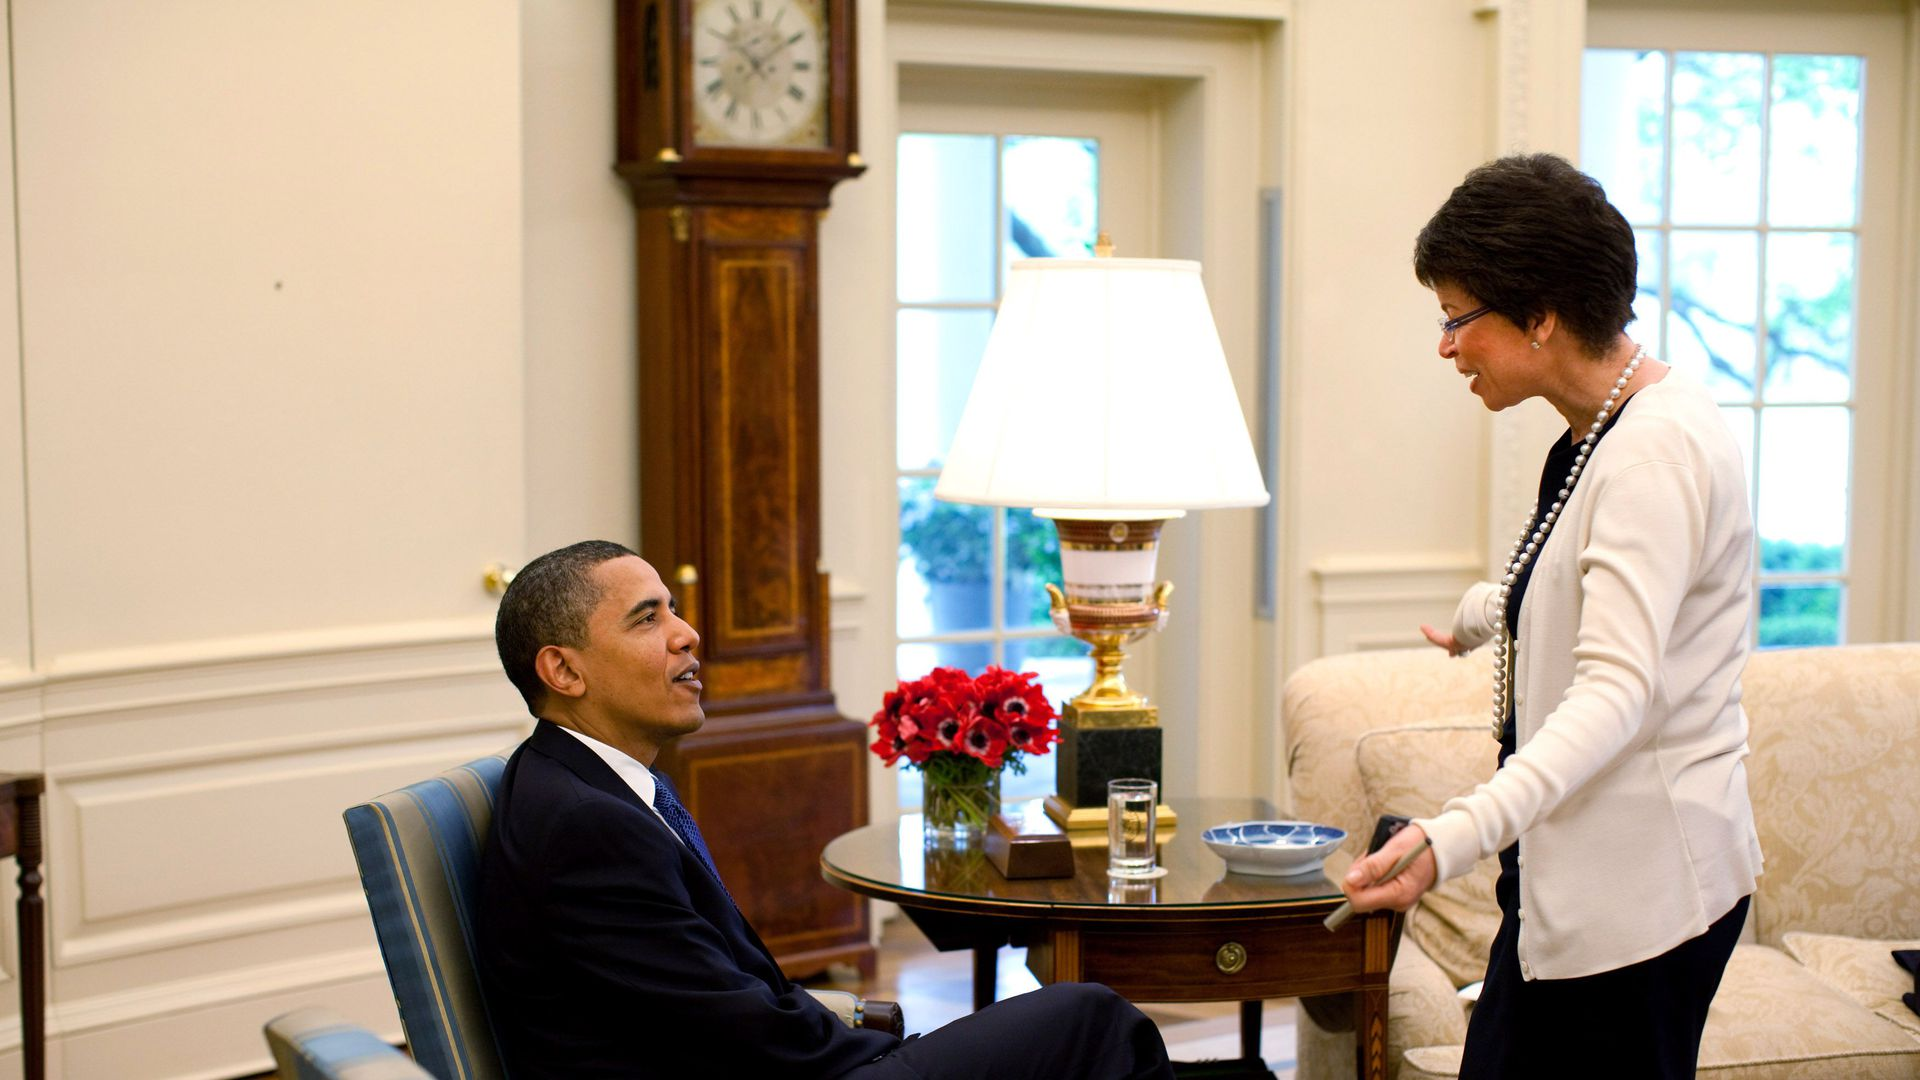 In this image, Obama is sitting on an armchair in the Oval Office while Valerie stands in a white cardigan and speaks to him.